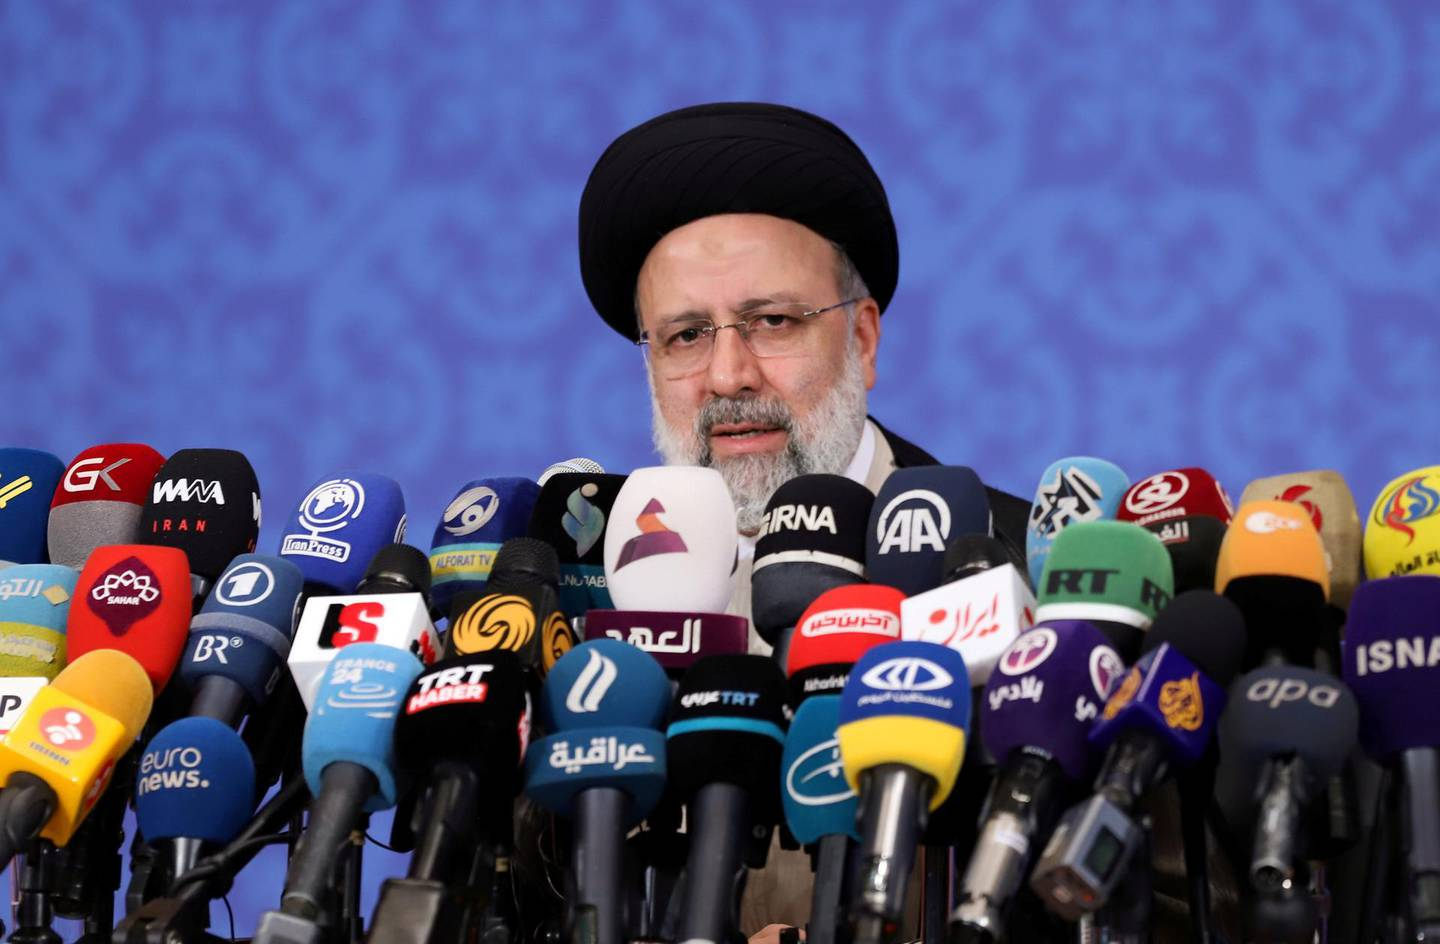 FILE PHOTO: Iran's President-elect Ebrahim Raisi speaks during a news conference in Tehran, Iran June 21, 2021. Majid Asgaripour/WANA (West Asia News Agency) via REUTERS/File Photo